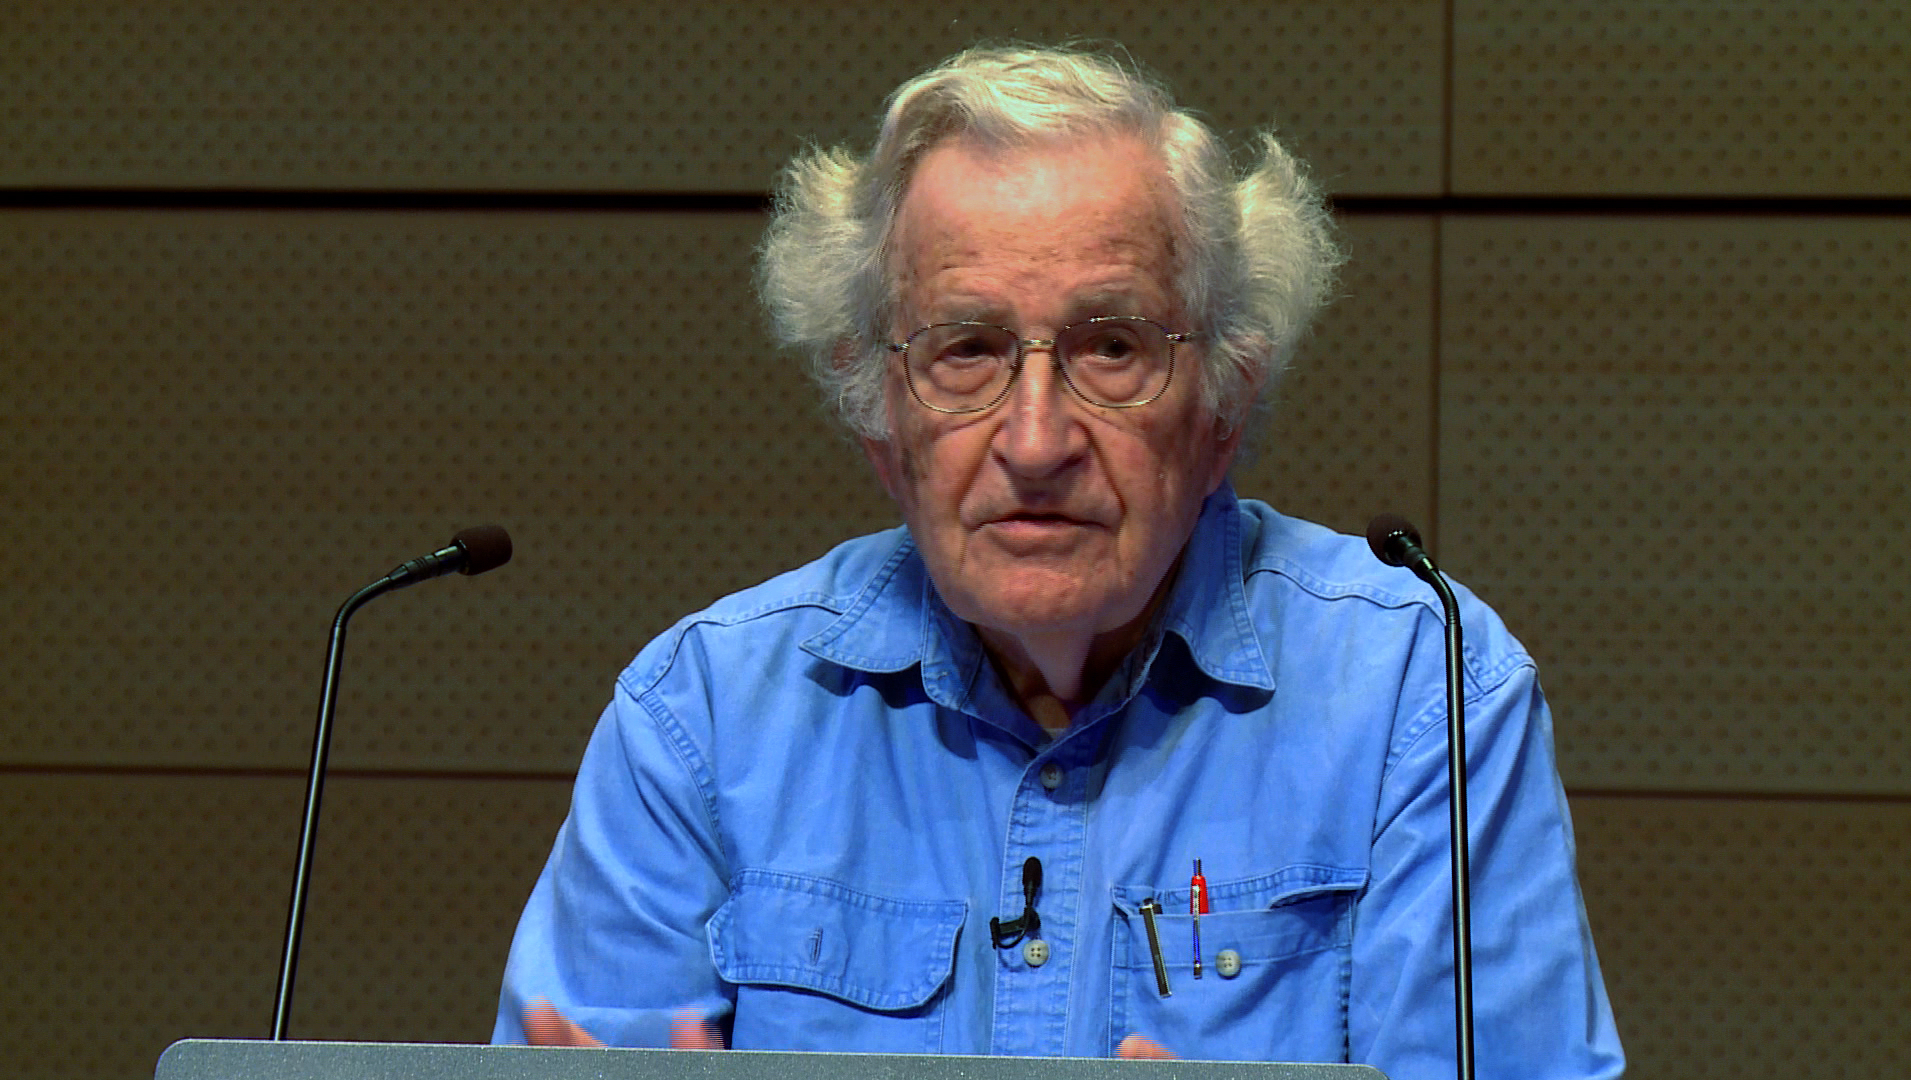 noam chomsky on george orwell the suppression of ideas and the  noam chomsky on george orwell the suppression of ideas and the myth of american exceptionalism democracy now